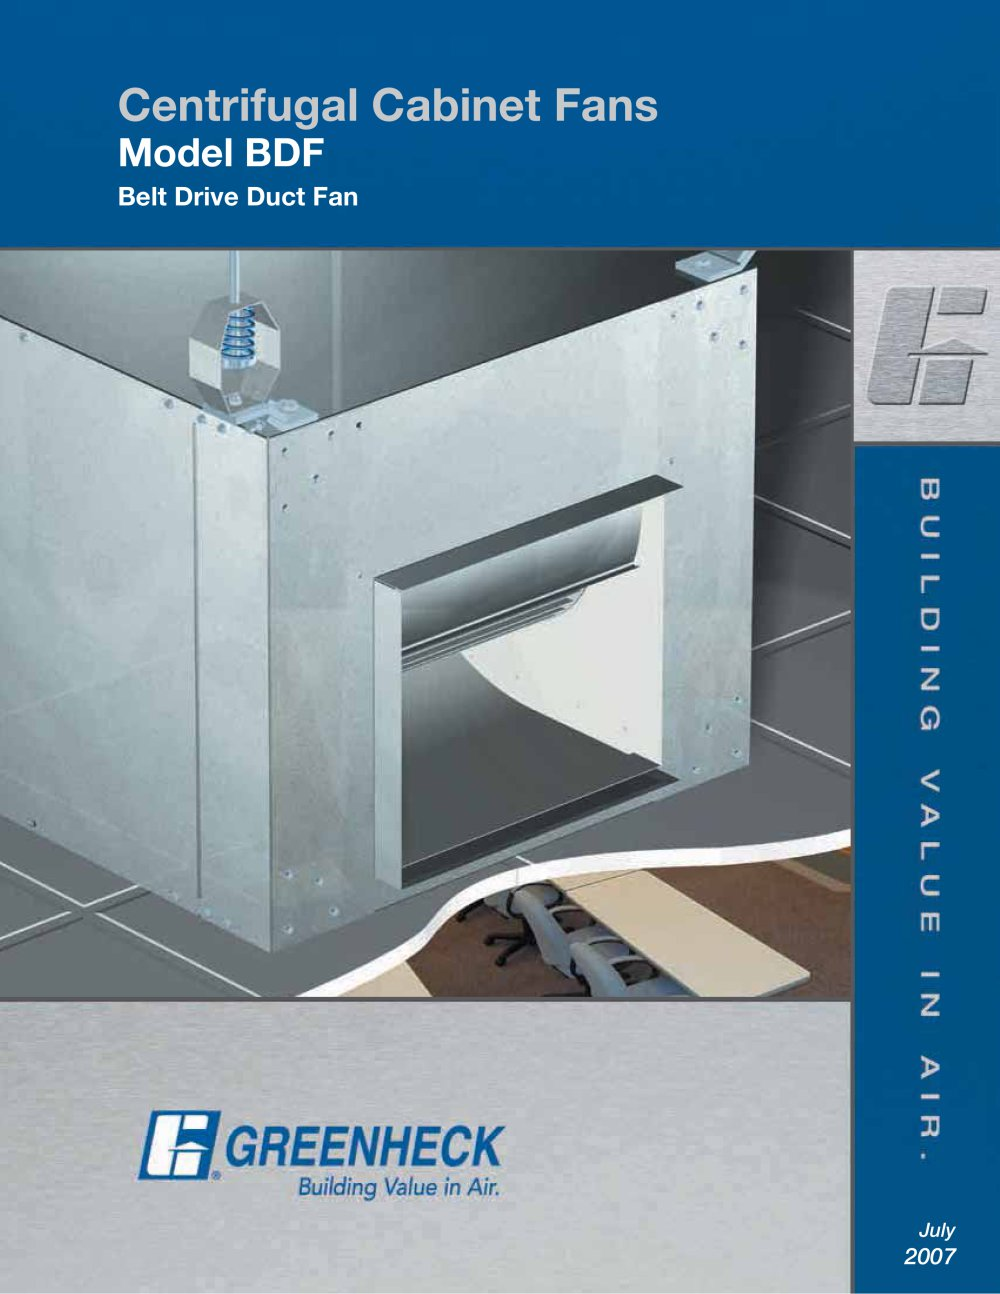 Belt drive duct fans model bdf greenheck pdf catalogue belt drive duct fans model bdf 1 12 pages aloadofball Choice Image